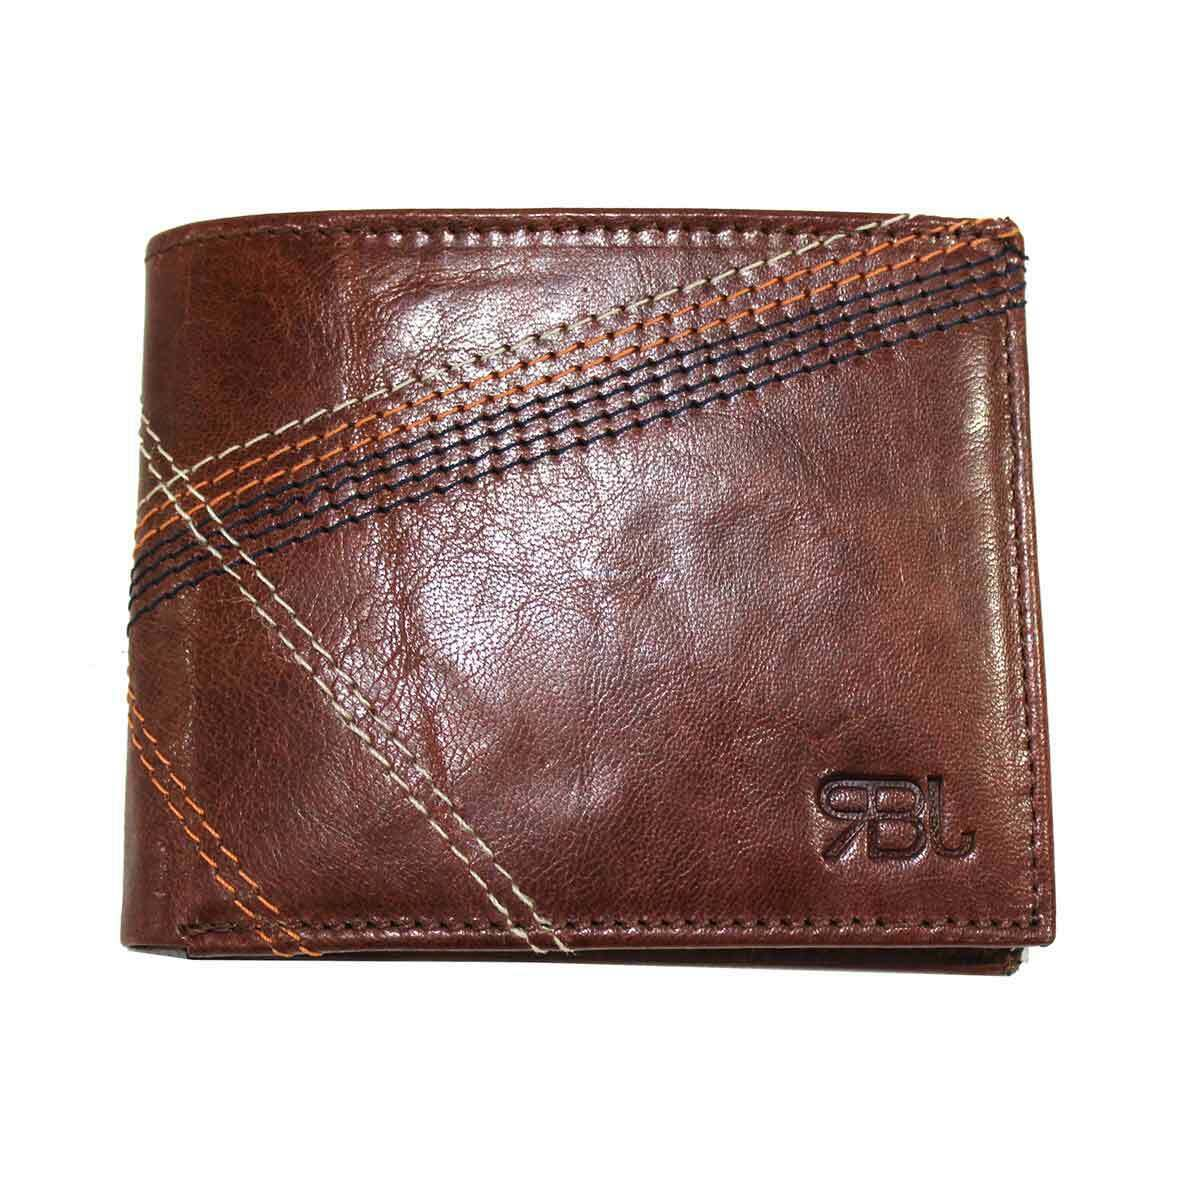 Men's Wallet In Genuine Leather For Credit Cards Banknotes Without Coin Pocket